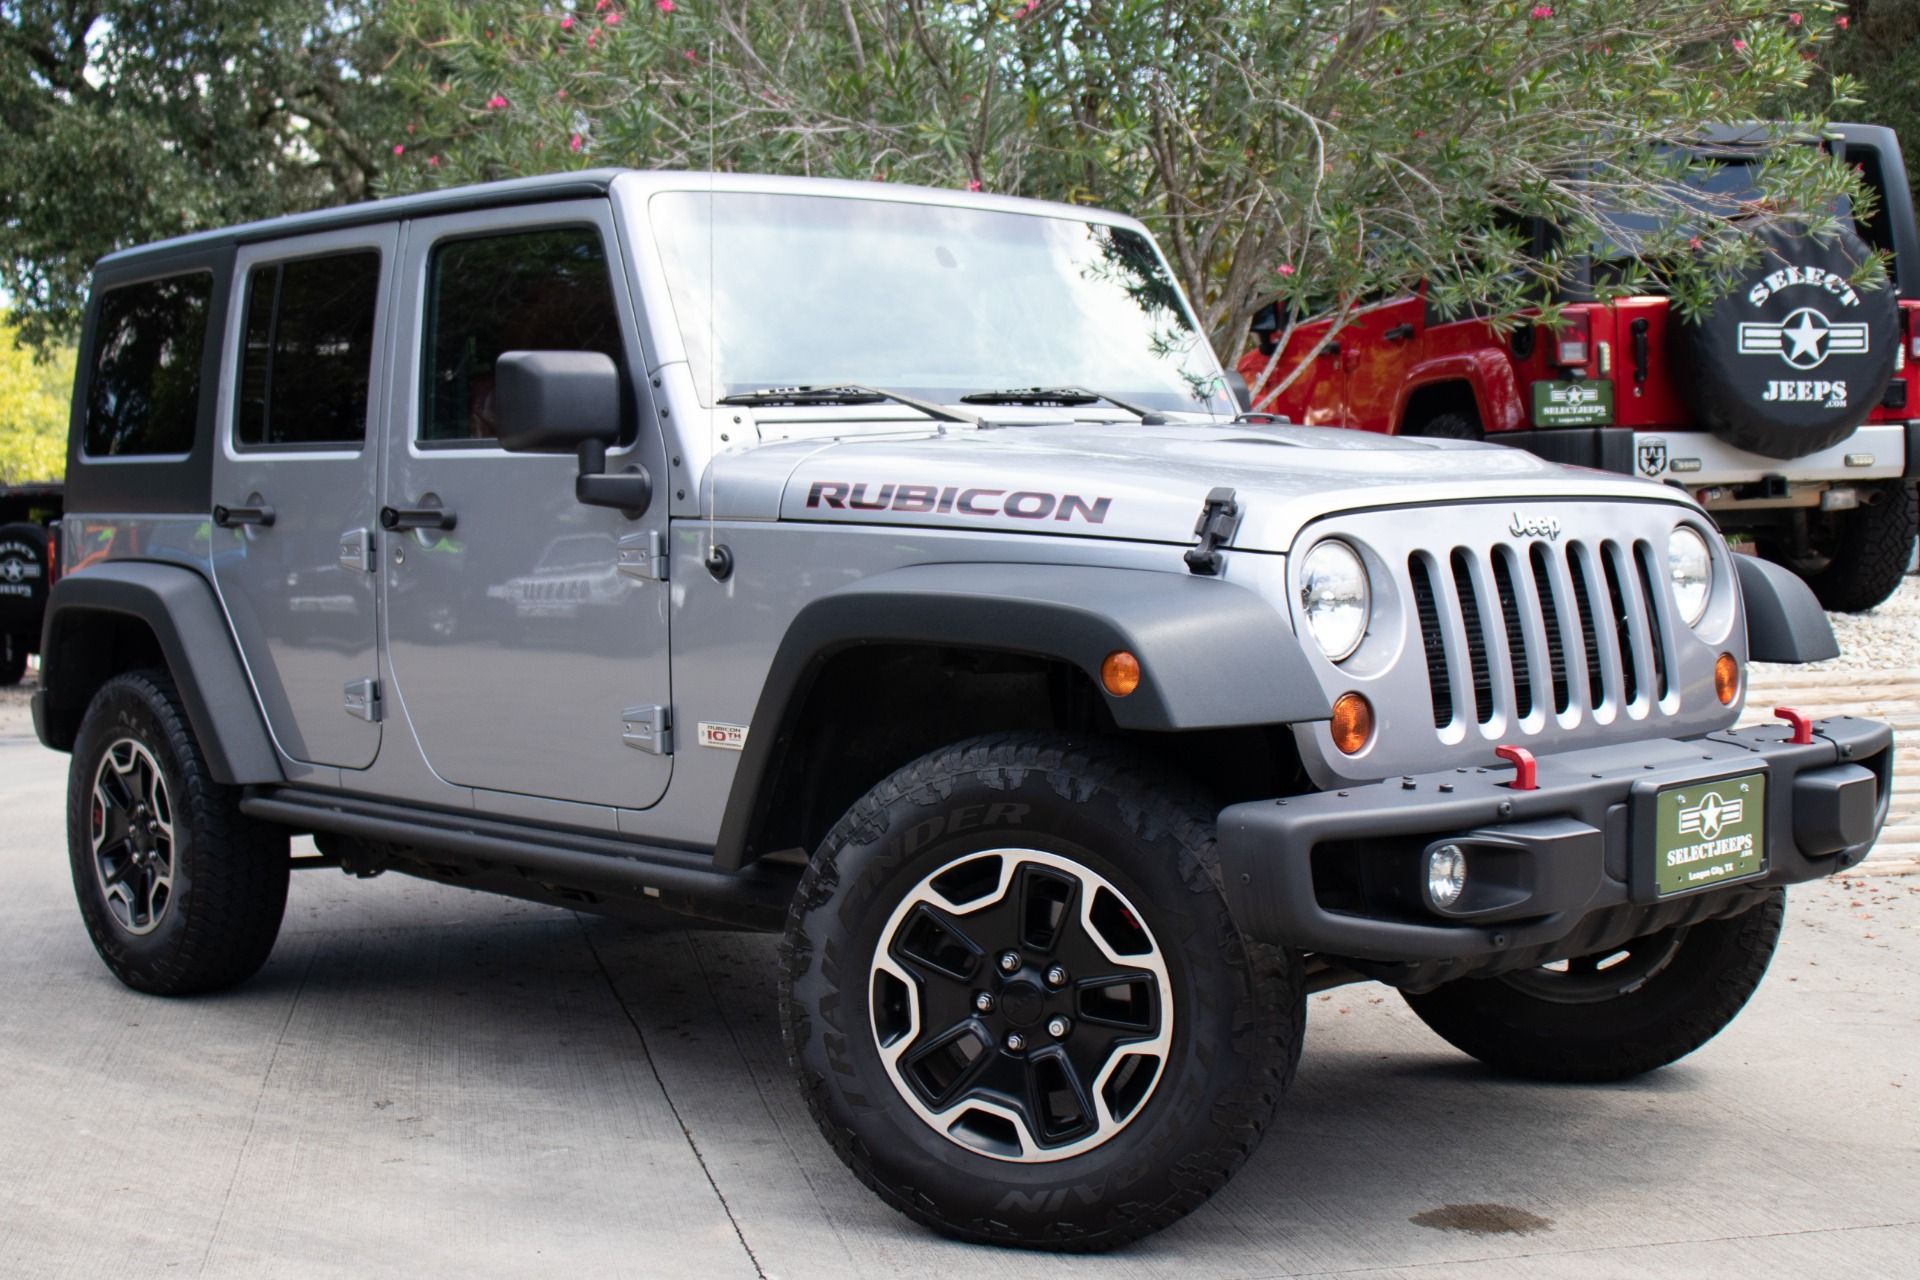 Used-2013-Jeep-Wrangler-Unlimited-4WD-4dr-Rubicon